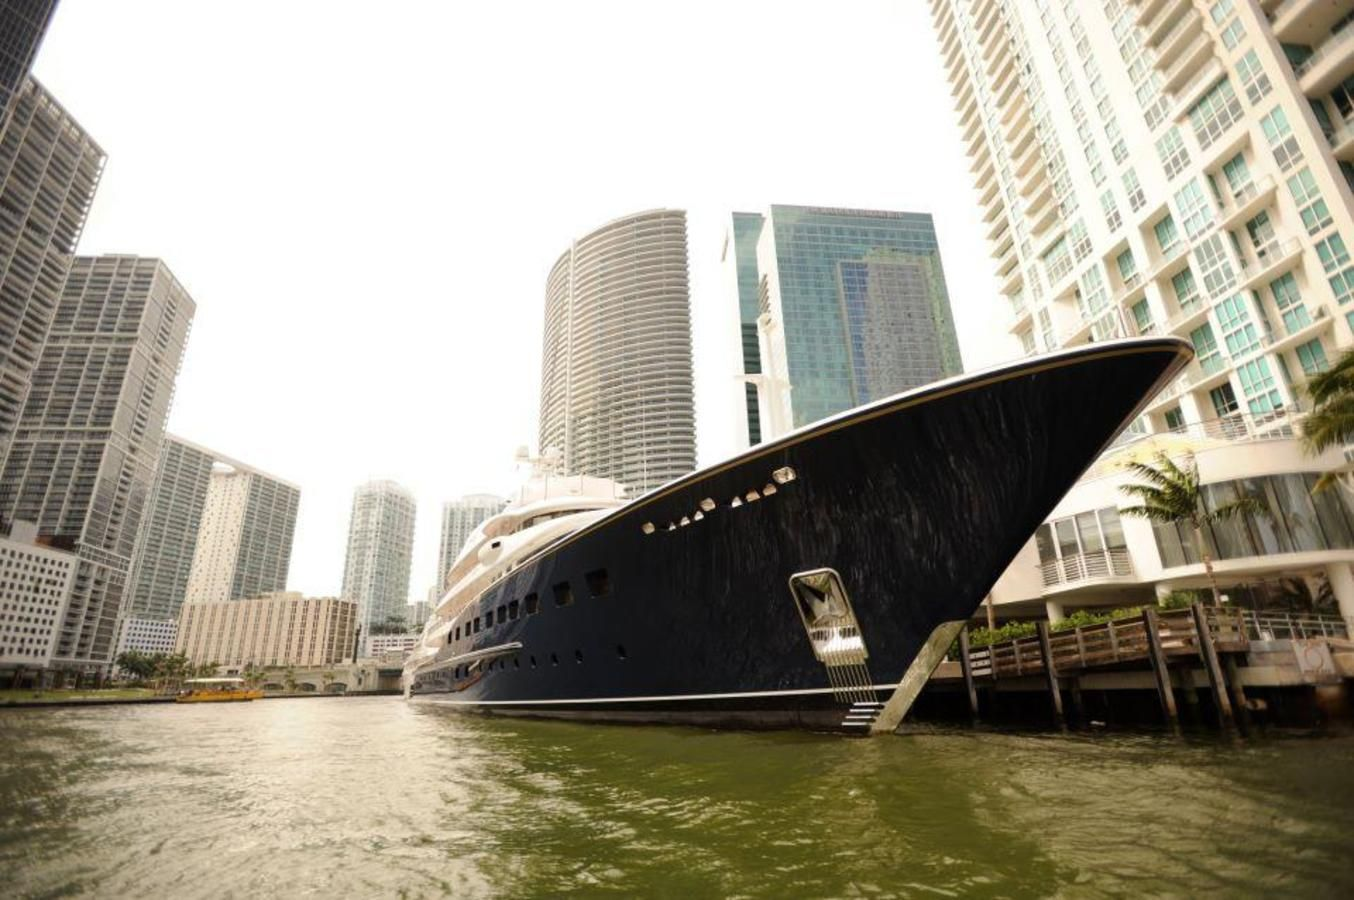 Luxury Yacht docked along the Miami River tour route in downtown Miami.